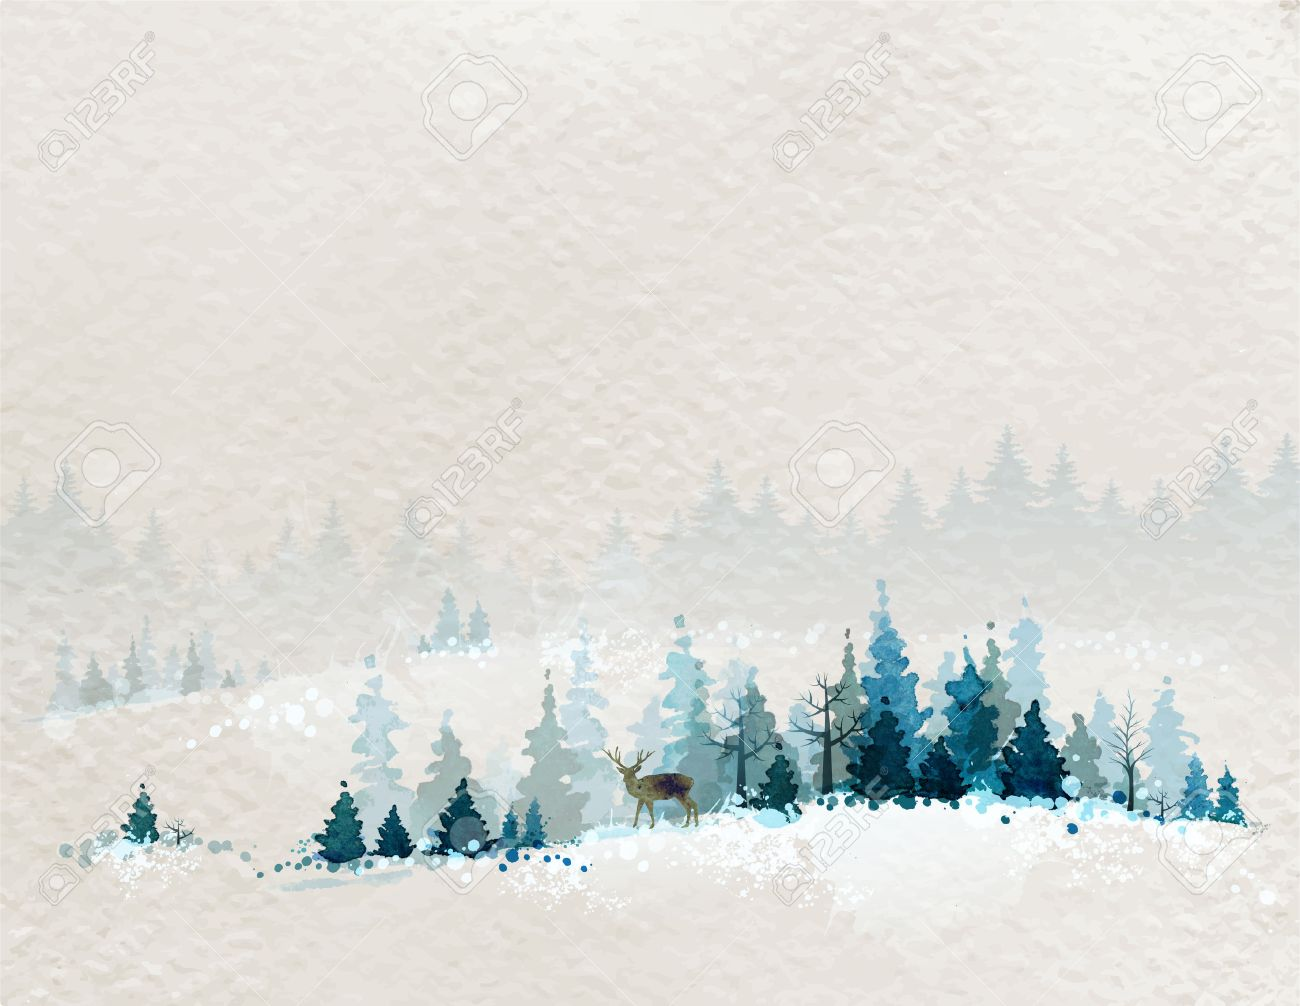 winter landscape with fir forests and deer Stock Vector - 37211009